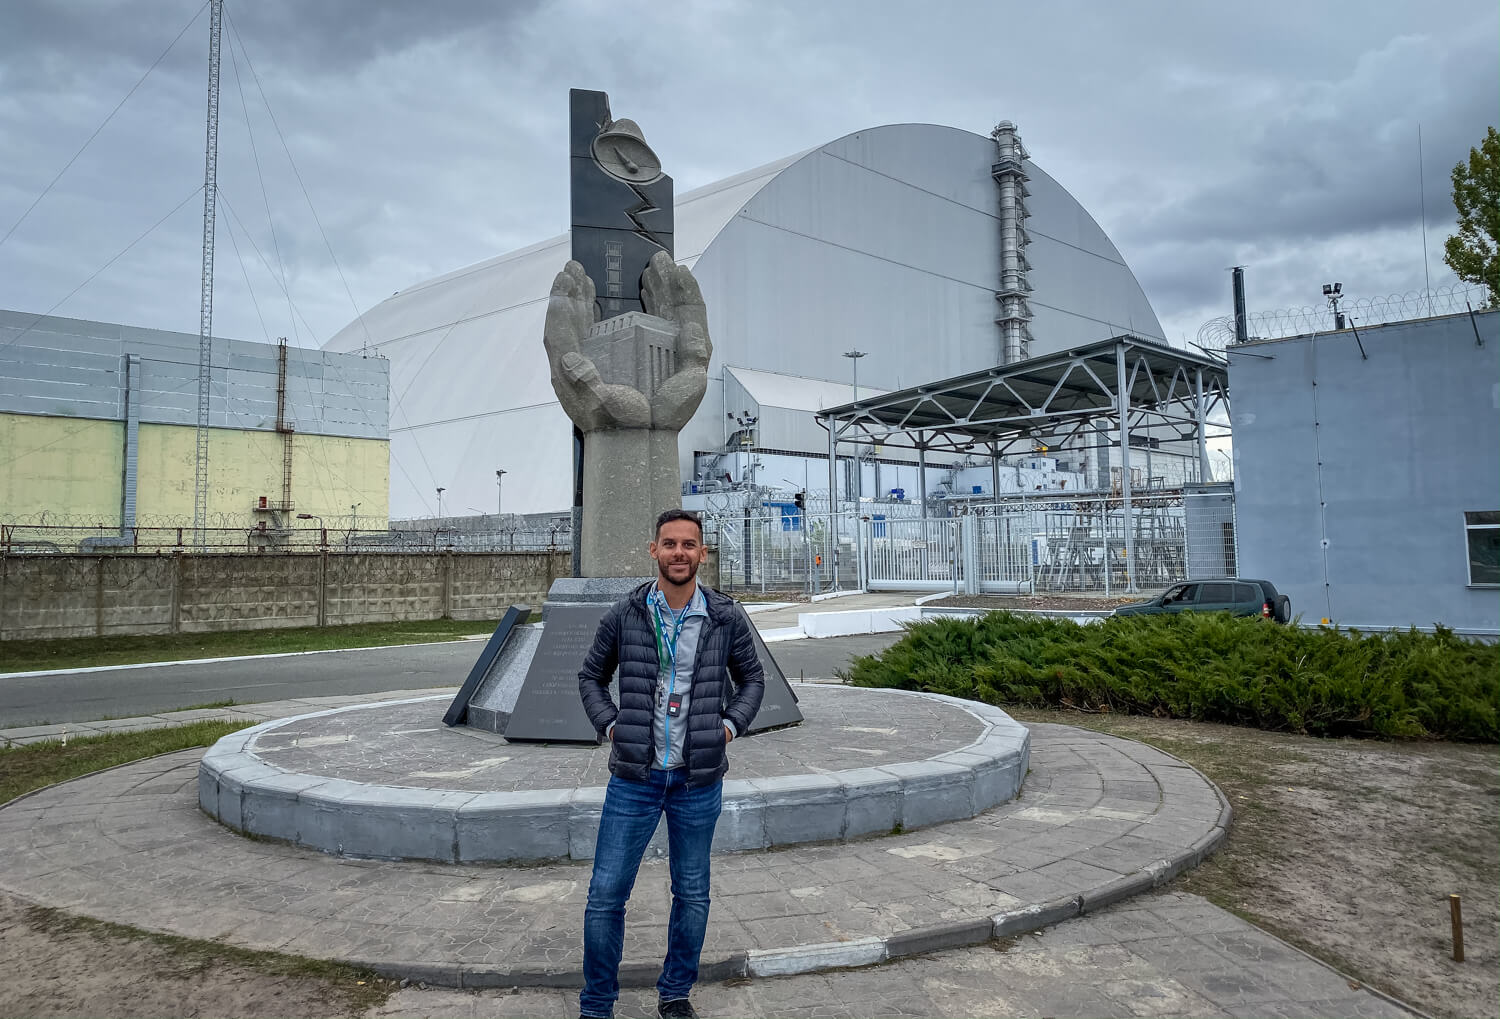 The Arch over Reactor #4 Chernobyl